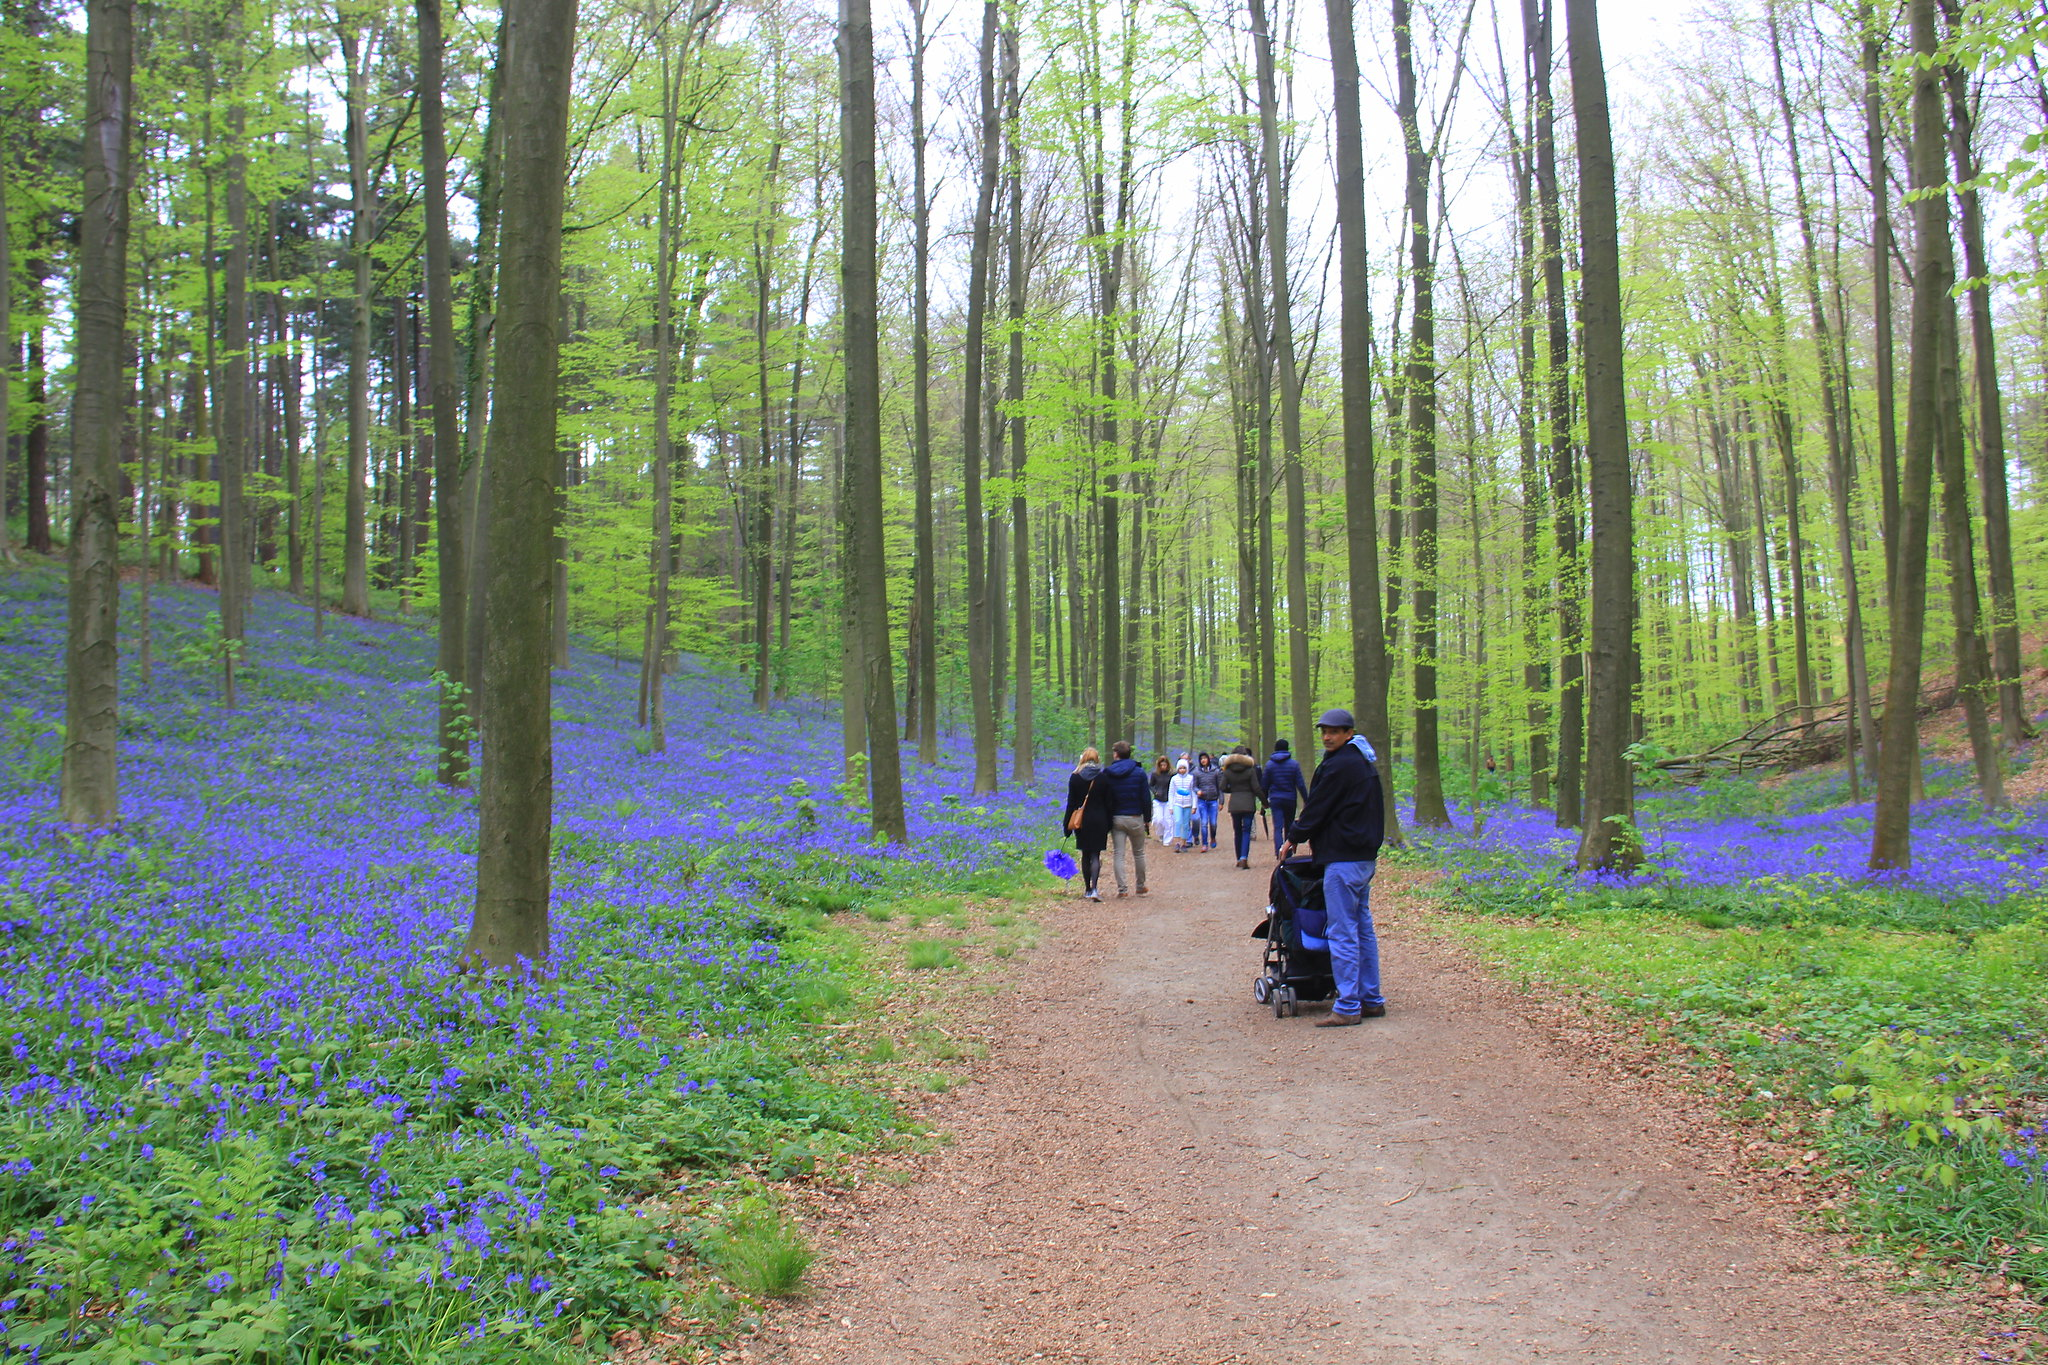 hallerbos is very popular during spring